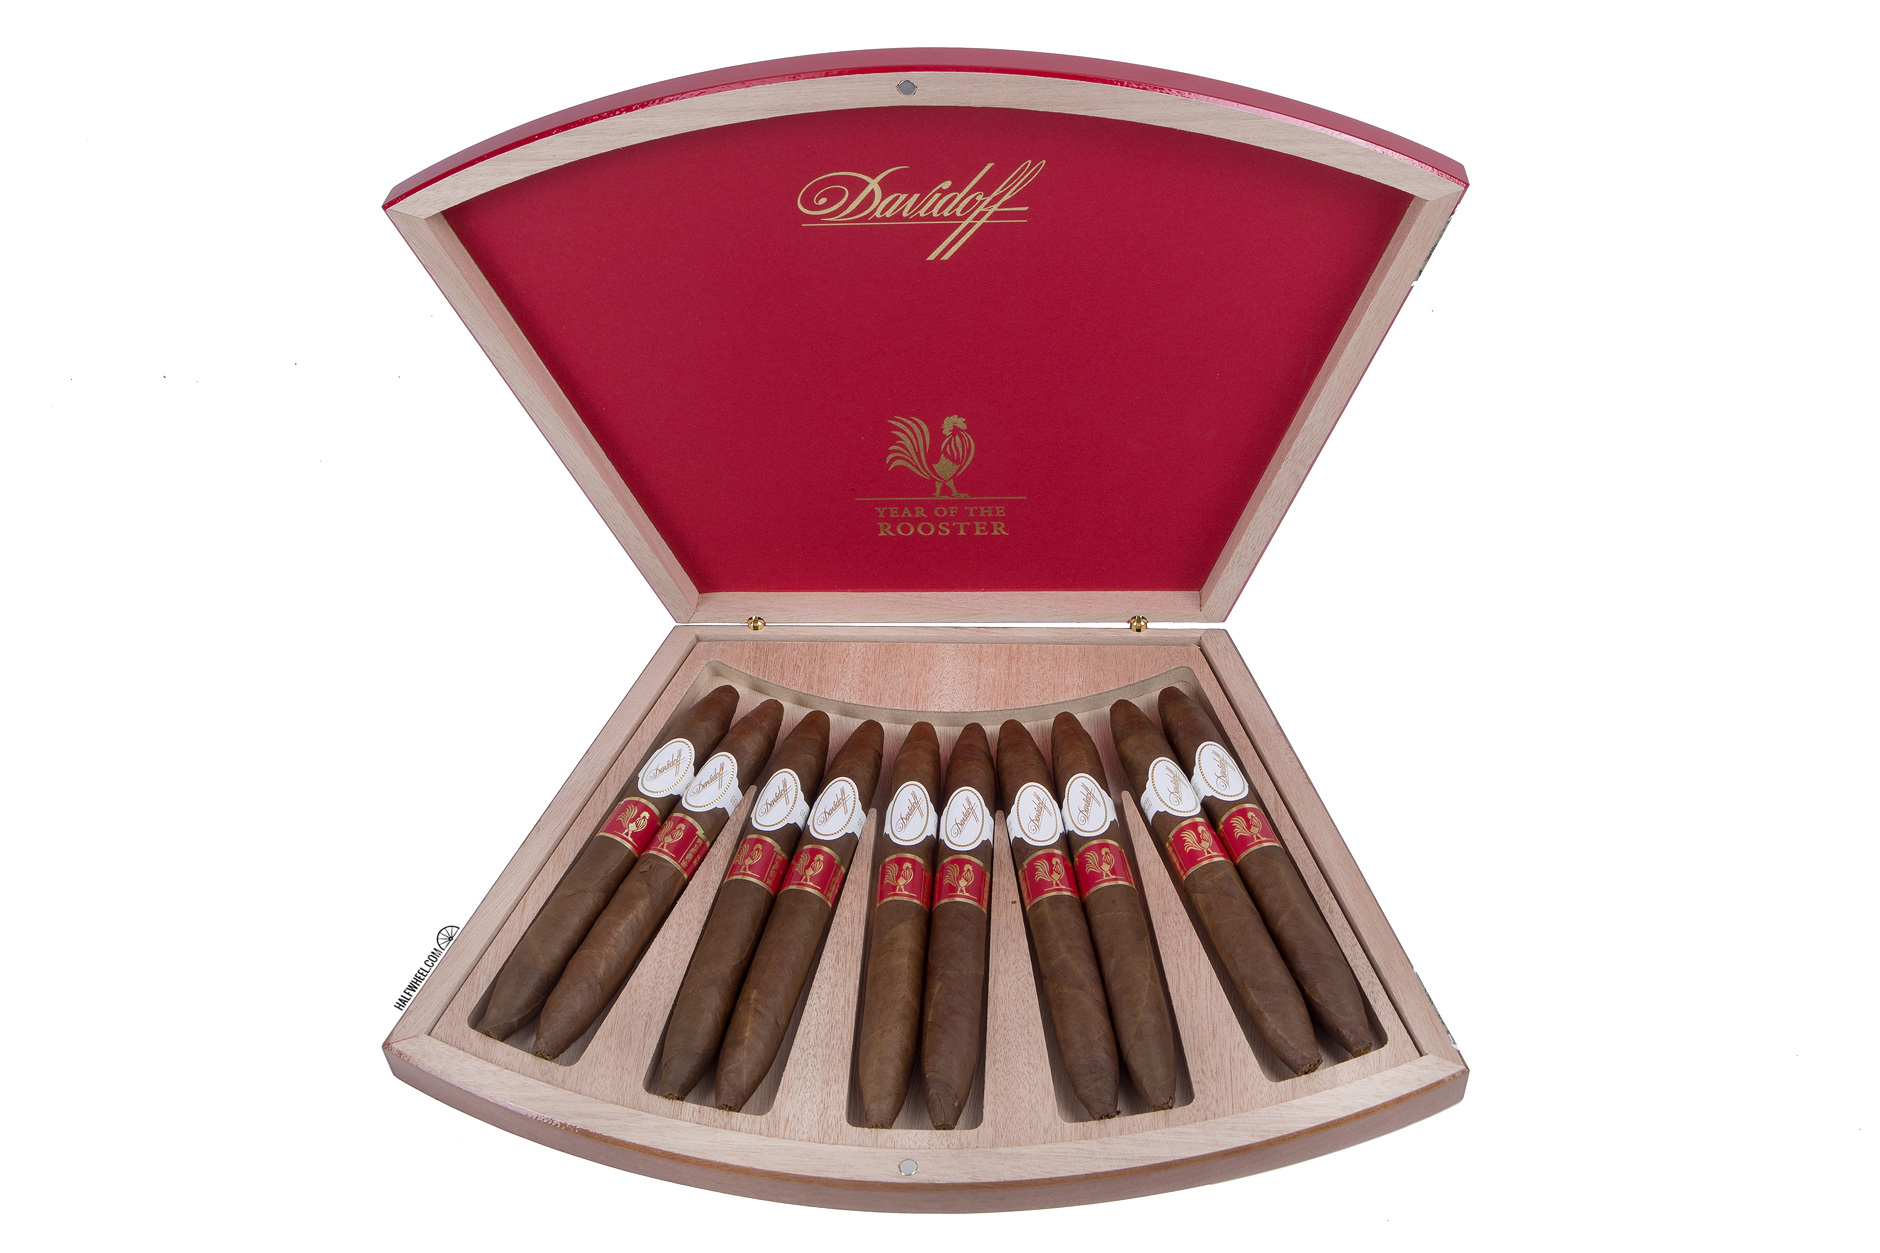 davidoff-limited-edition-2017-year-of-the-rooster-box-2